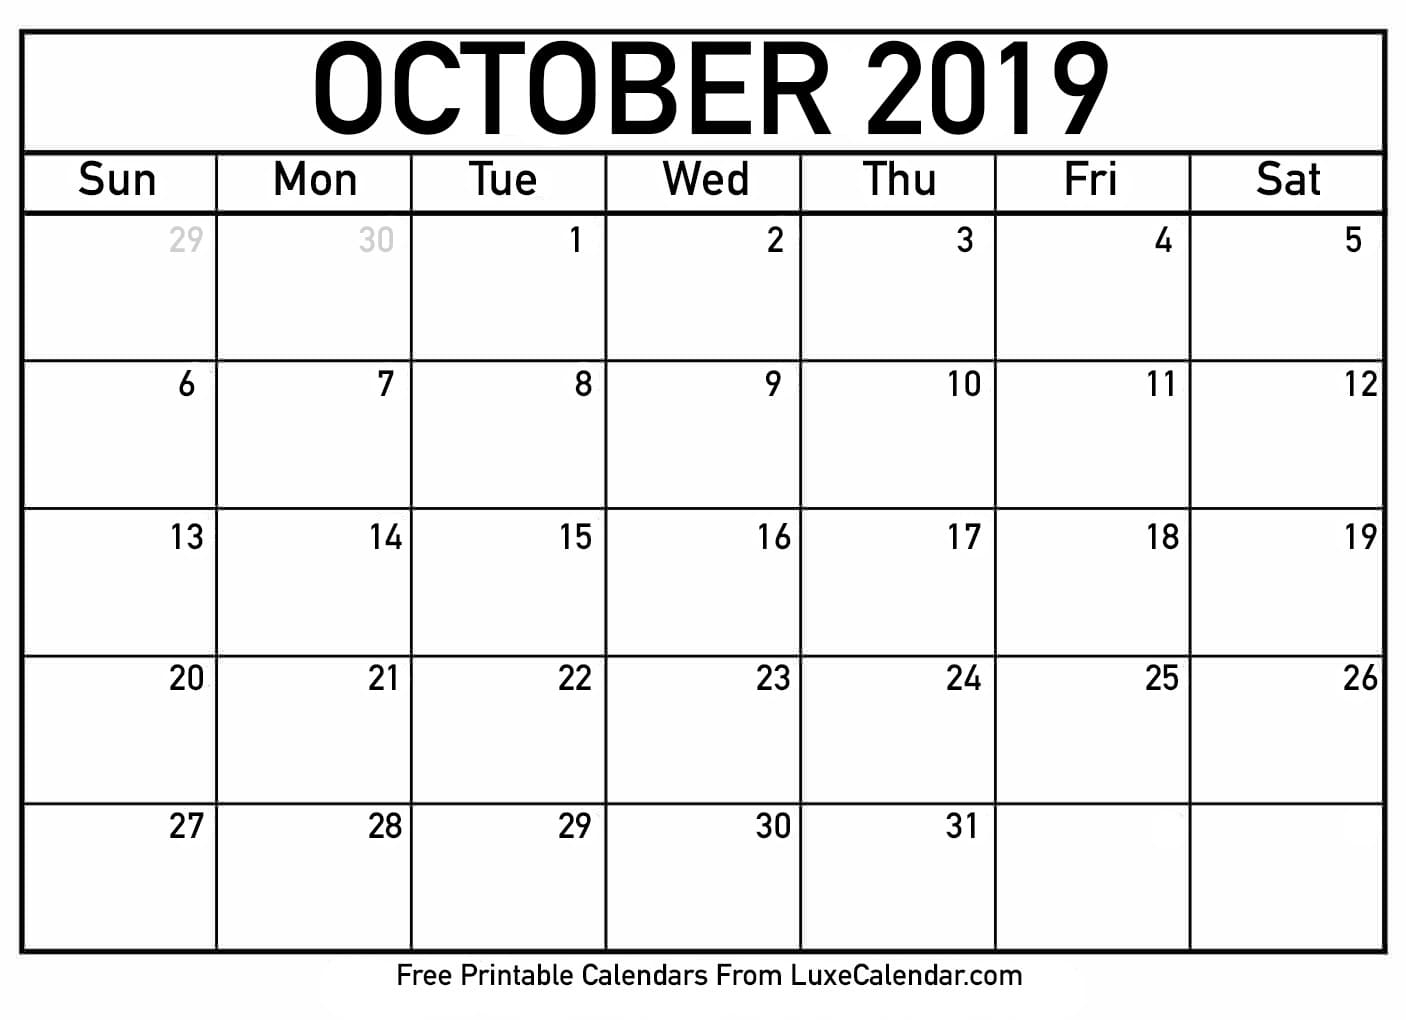 Blank October 2019 Calendar Printable - Luxe Calendar intended for Free Printable Scary October Calendar 2019